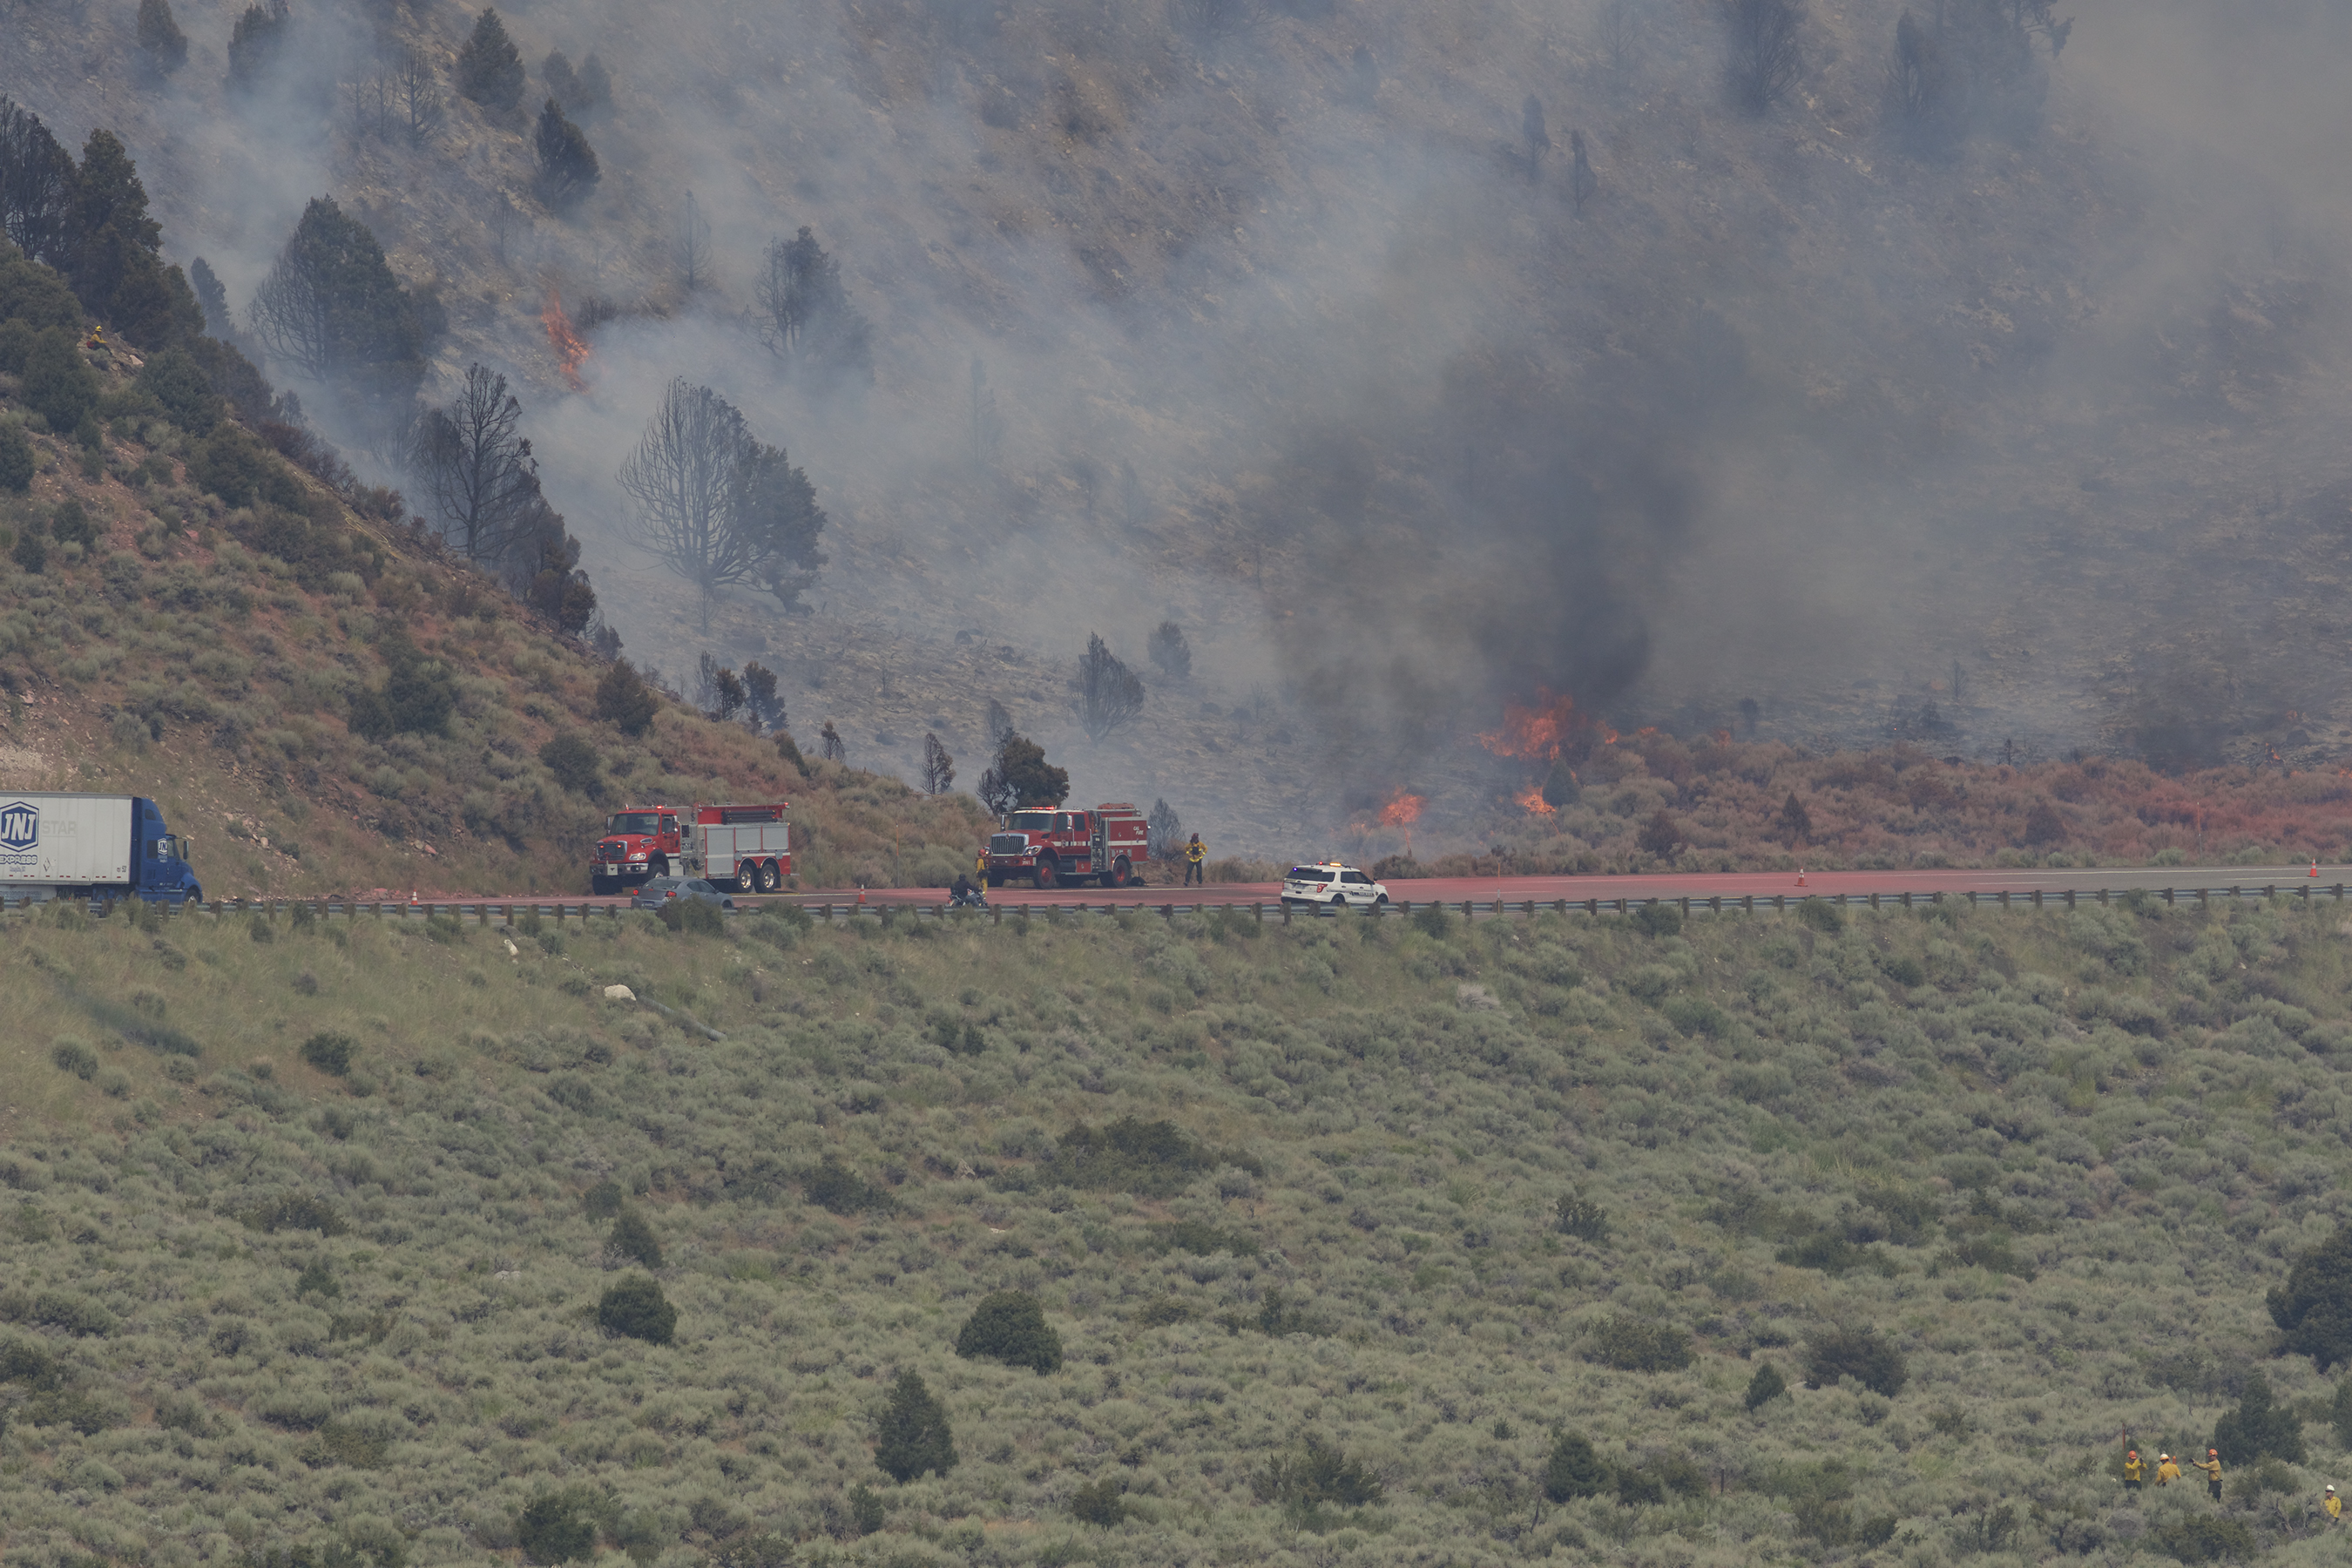 Fire personnel on Highway 395 and monitoring from below. Red coloration on the highway is fire retardant. Photo by Santiago M. Escruceria.